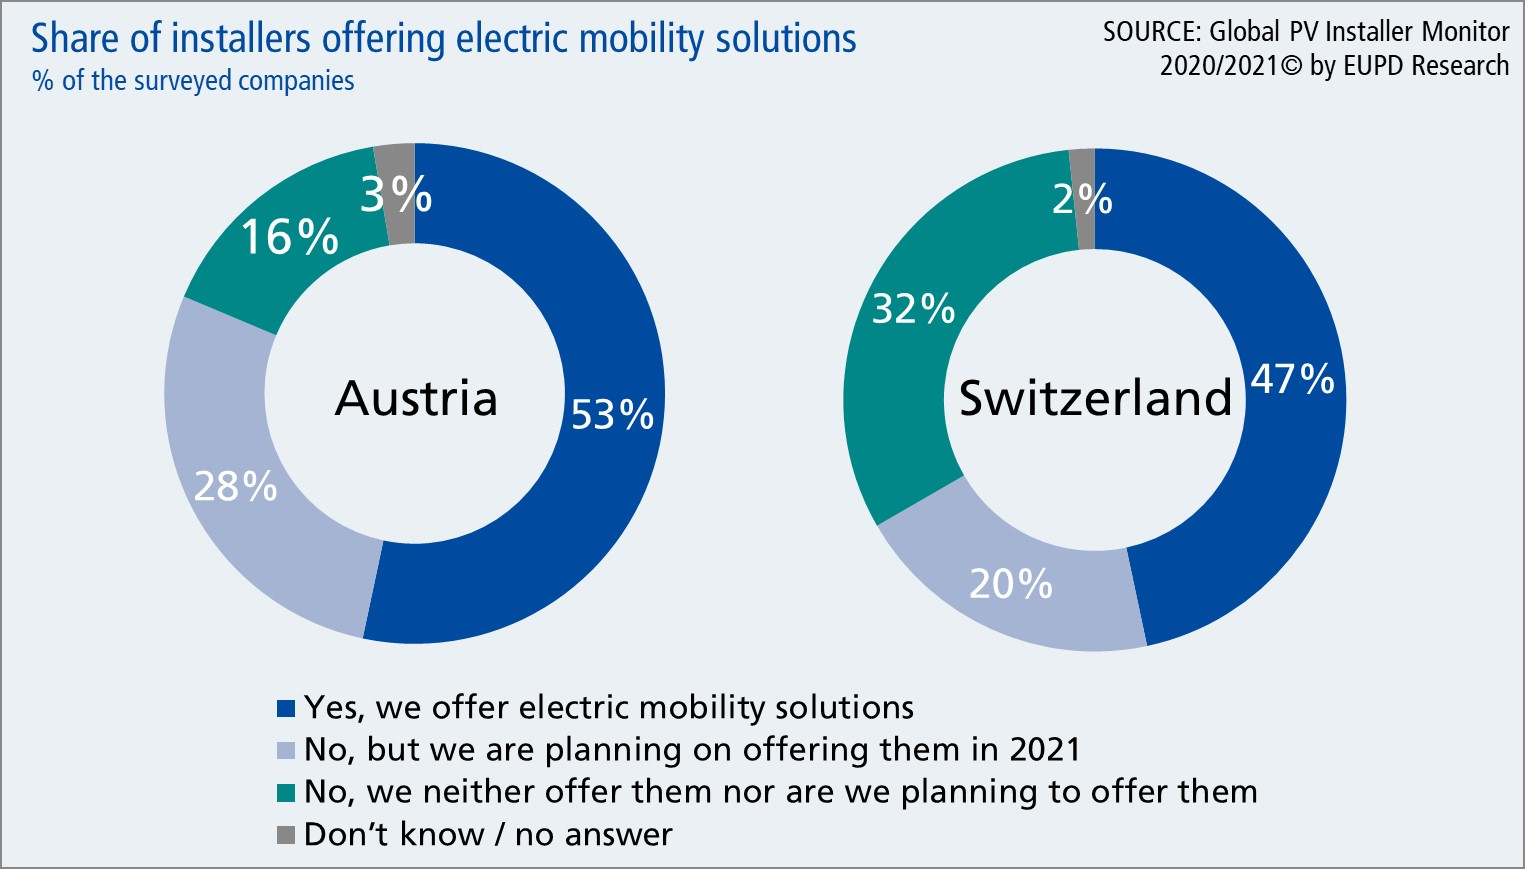 Share of installers offering electric mobility solutions in Austria and Switzerland